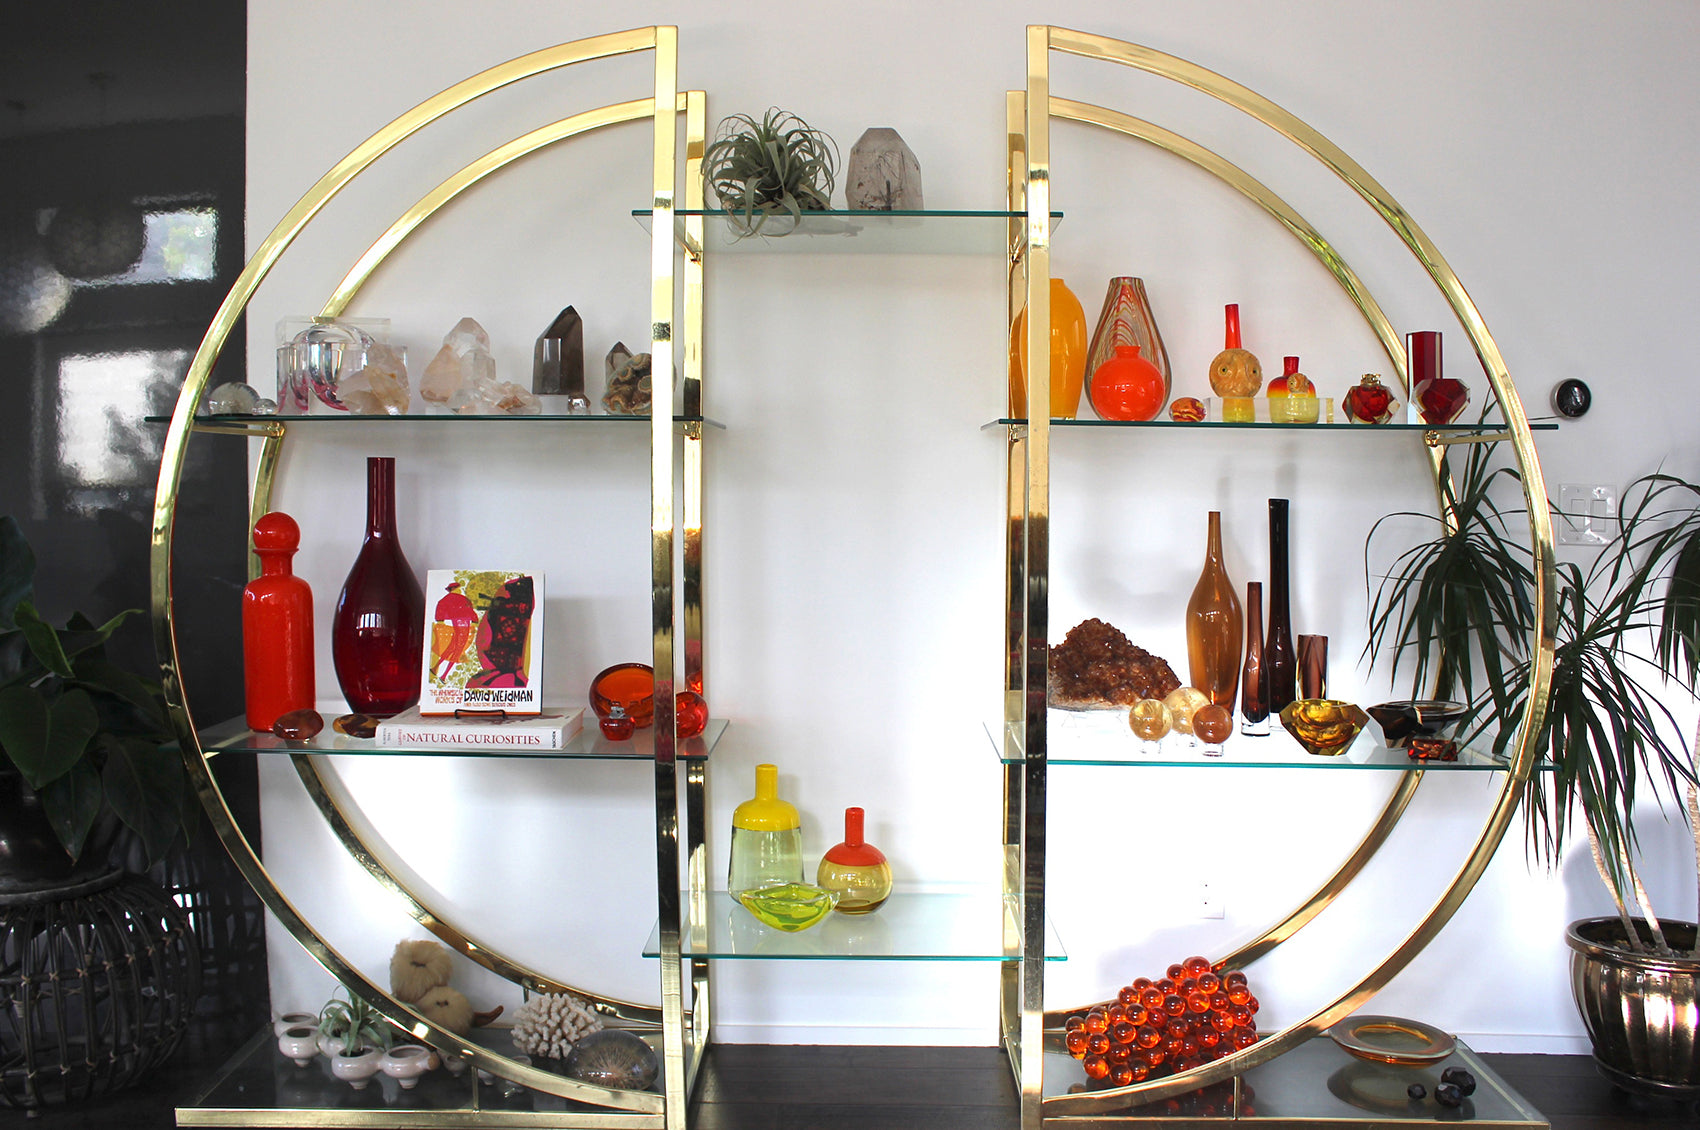 Circular gold structure with glass shelves decorated with crystals and colorful vases.